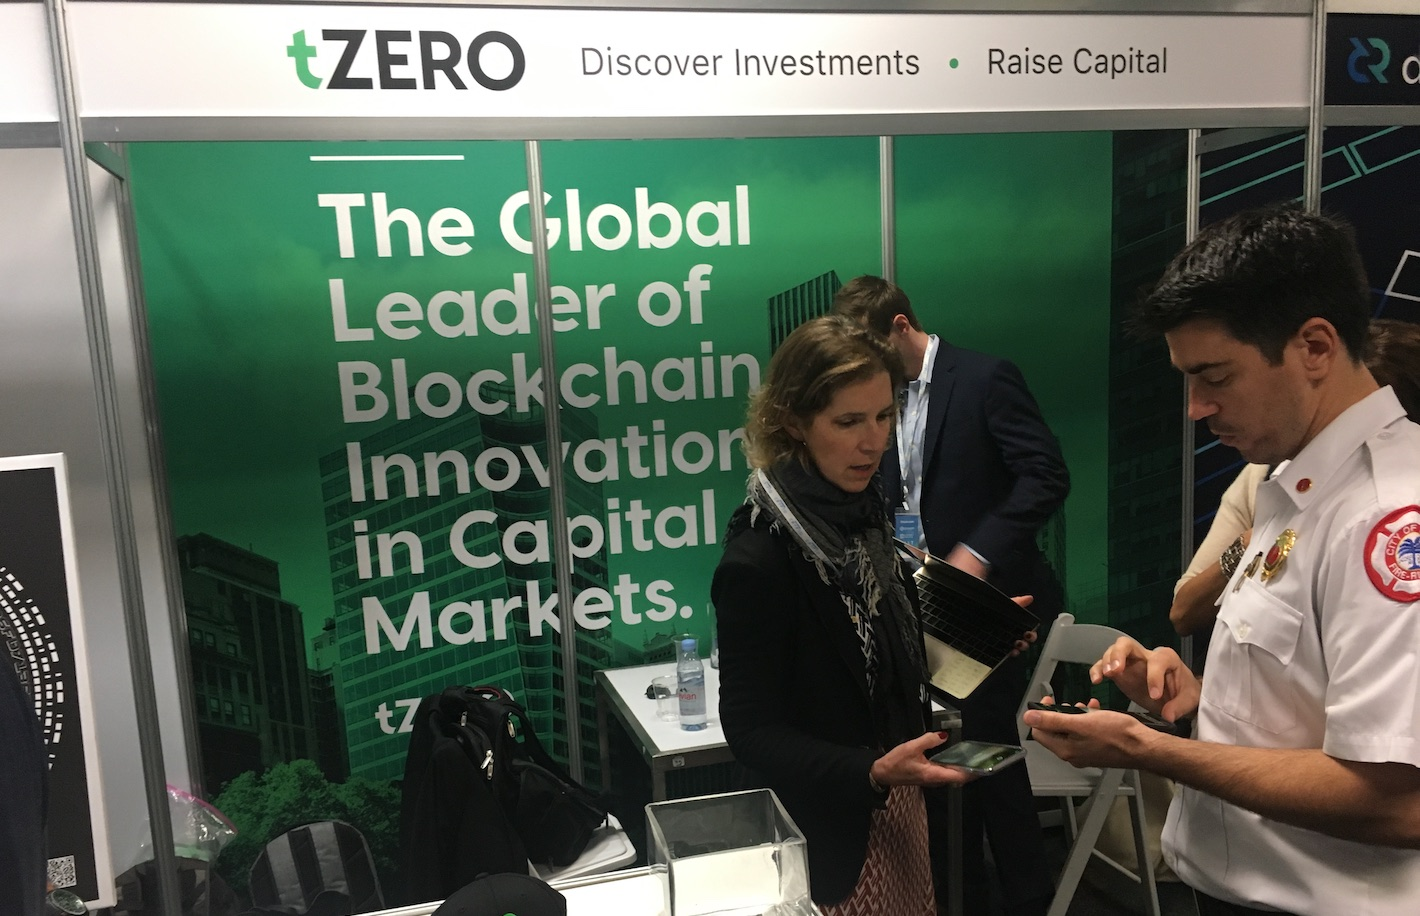 TZero CEO Resigns; Chief Legal Officer Appointed as Interim Replacement